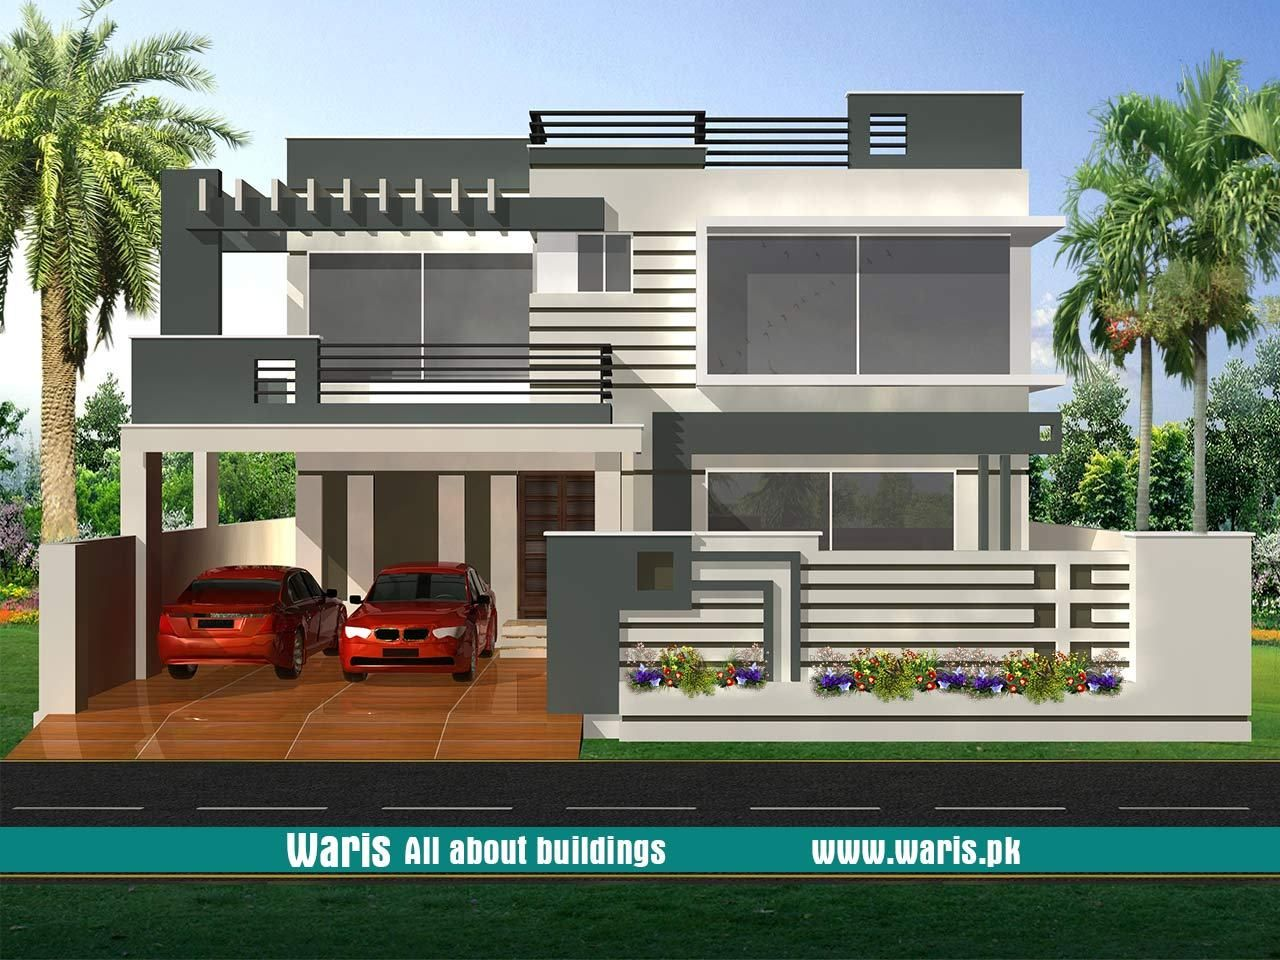 1 Kanal House Design In Pakistan Architecture House Design